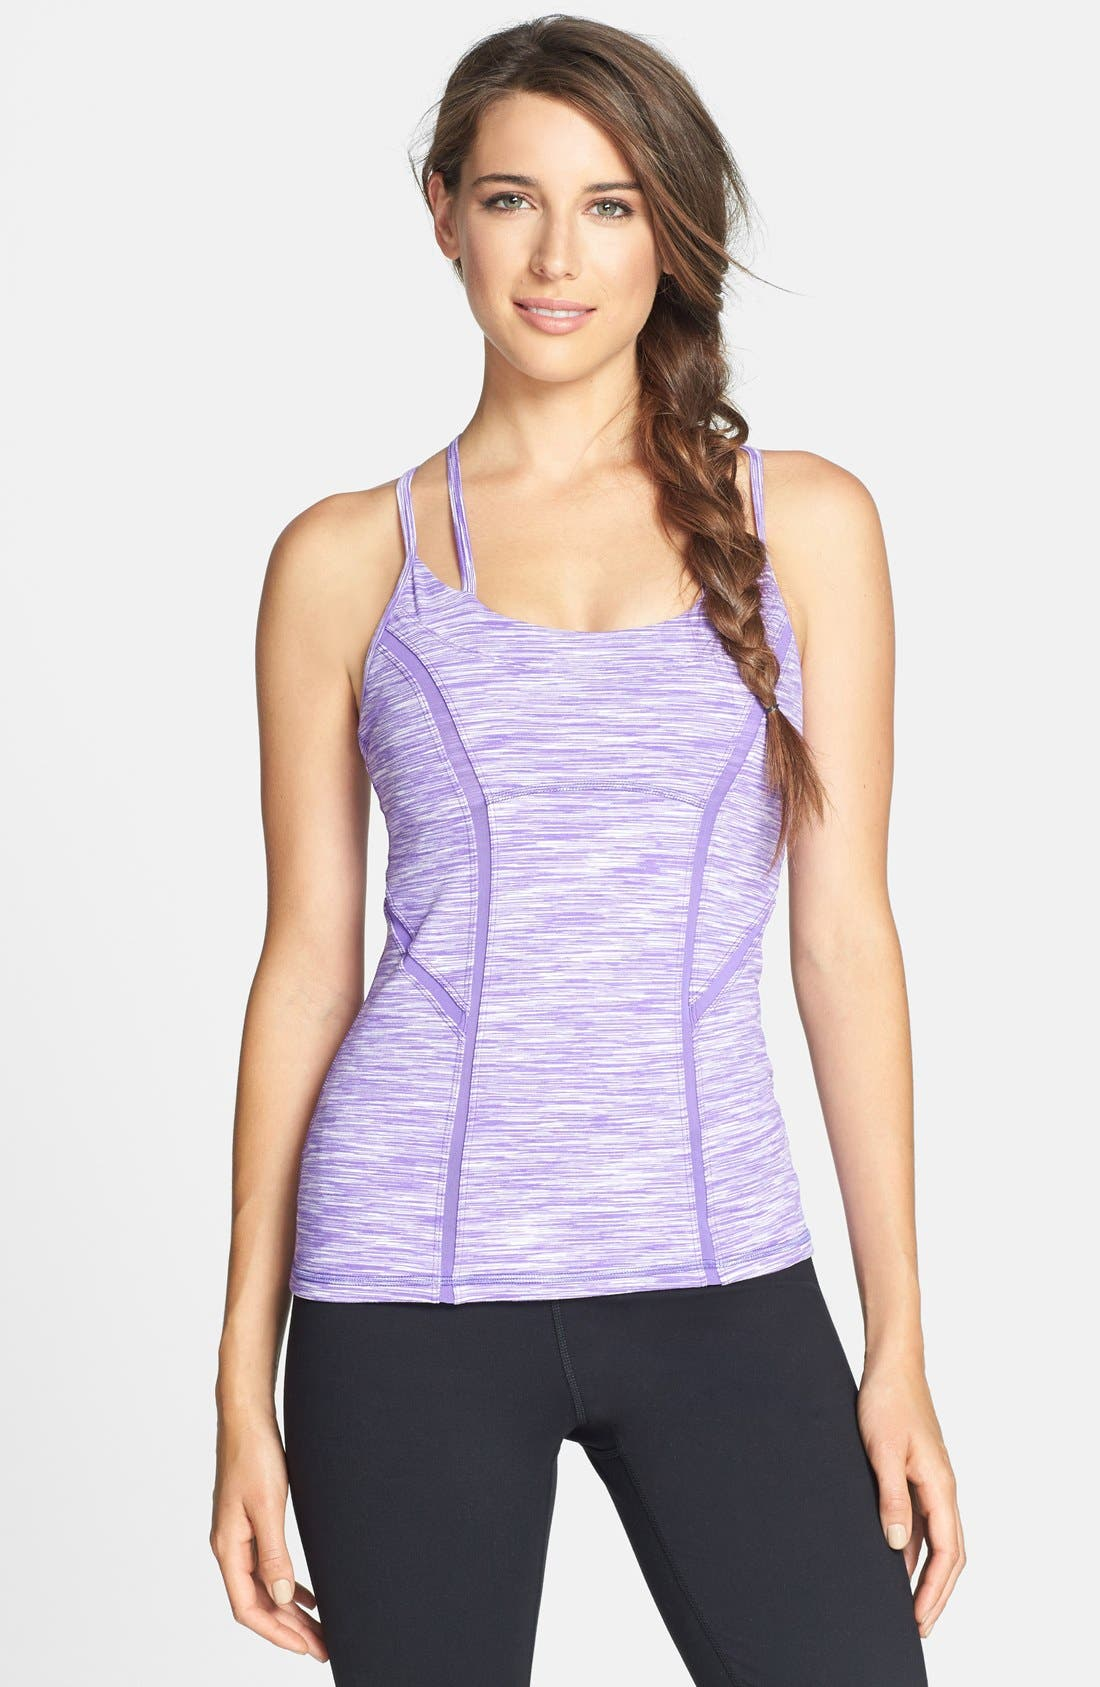 Main Image - Zella 'Alexa' Space Dye Shelf Bra Tank